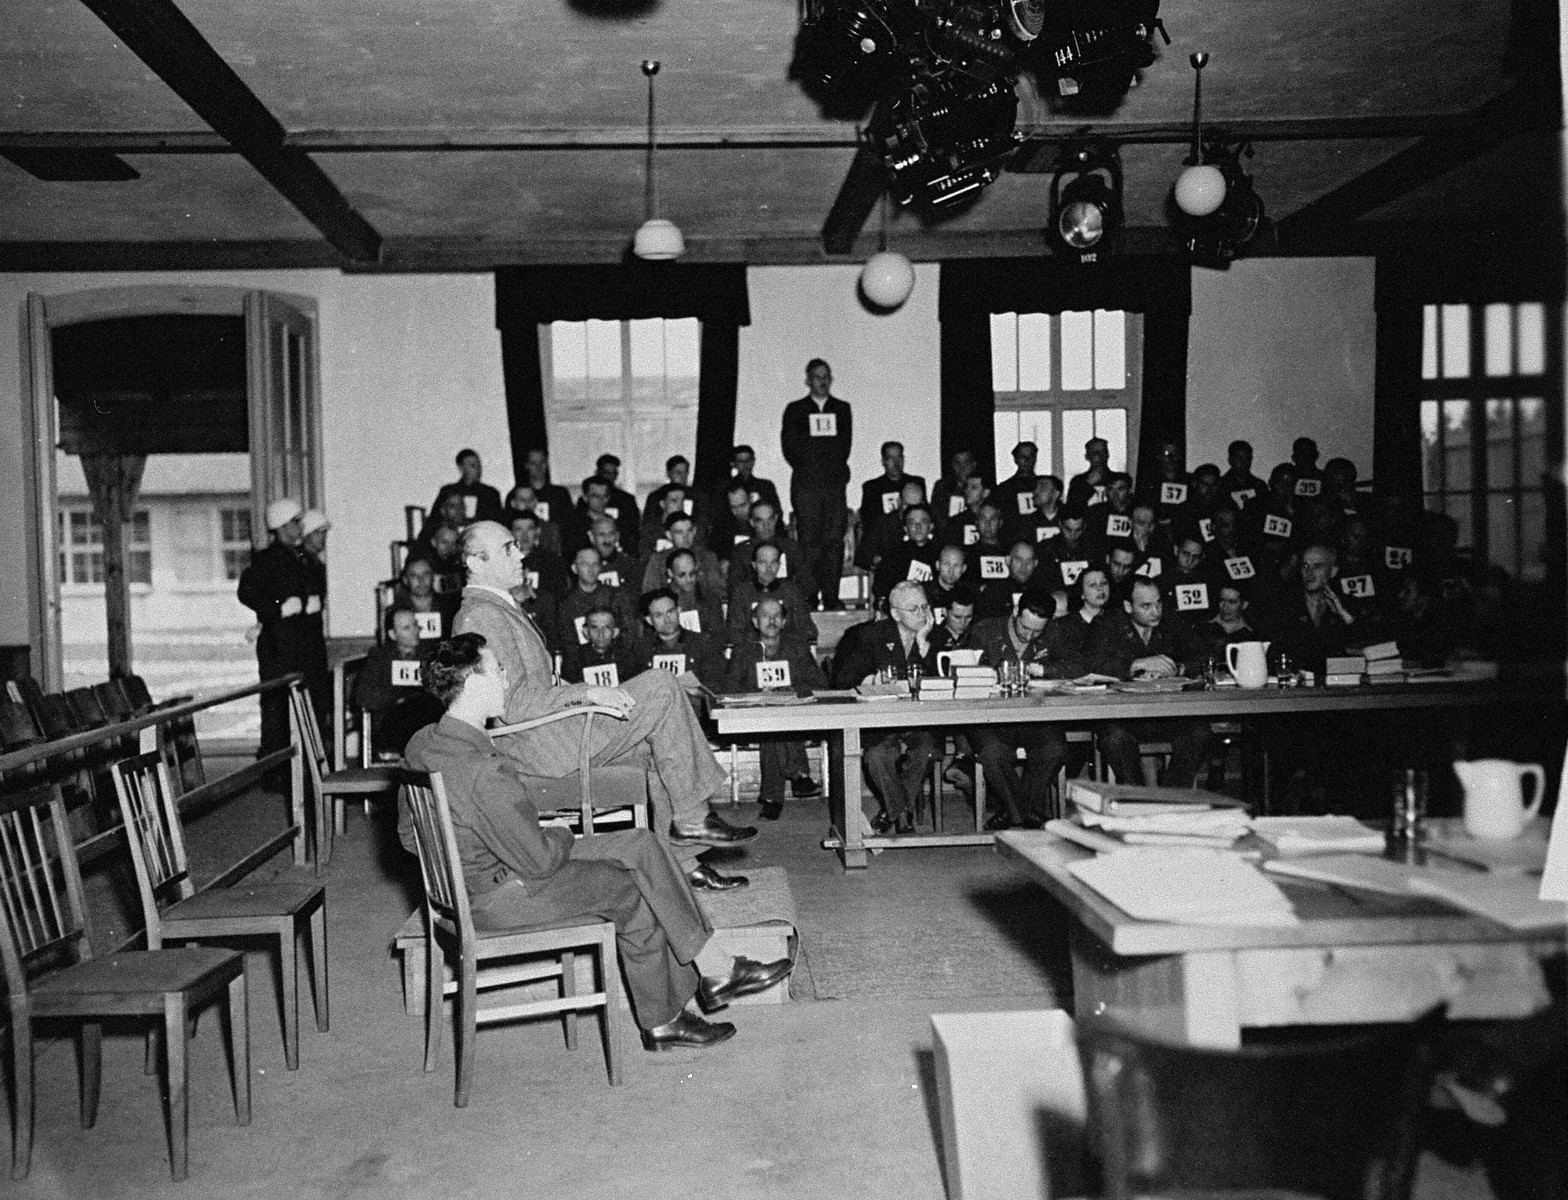 A witness testifies at the trial of 61 former camp personnel and prisoners from Mauthausen.    Standing in the defendants' dock at back is August Eigruber, former Gauletier of Upper Austria.